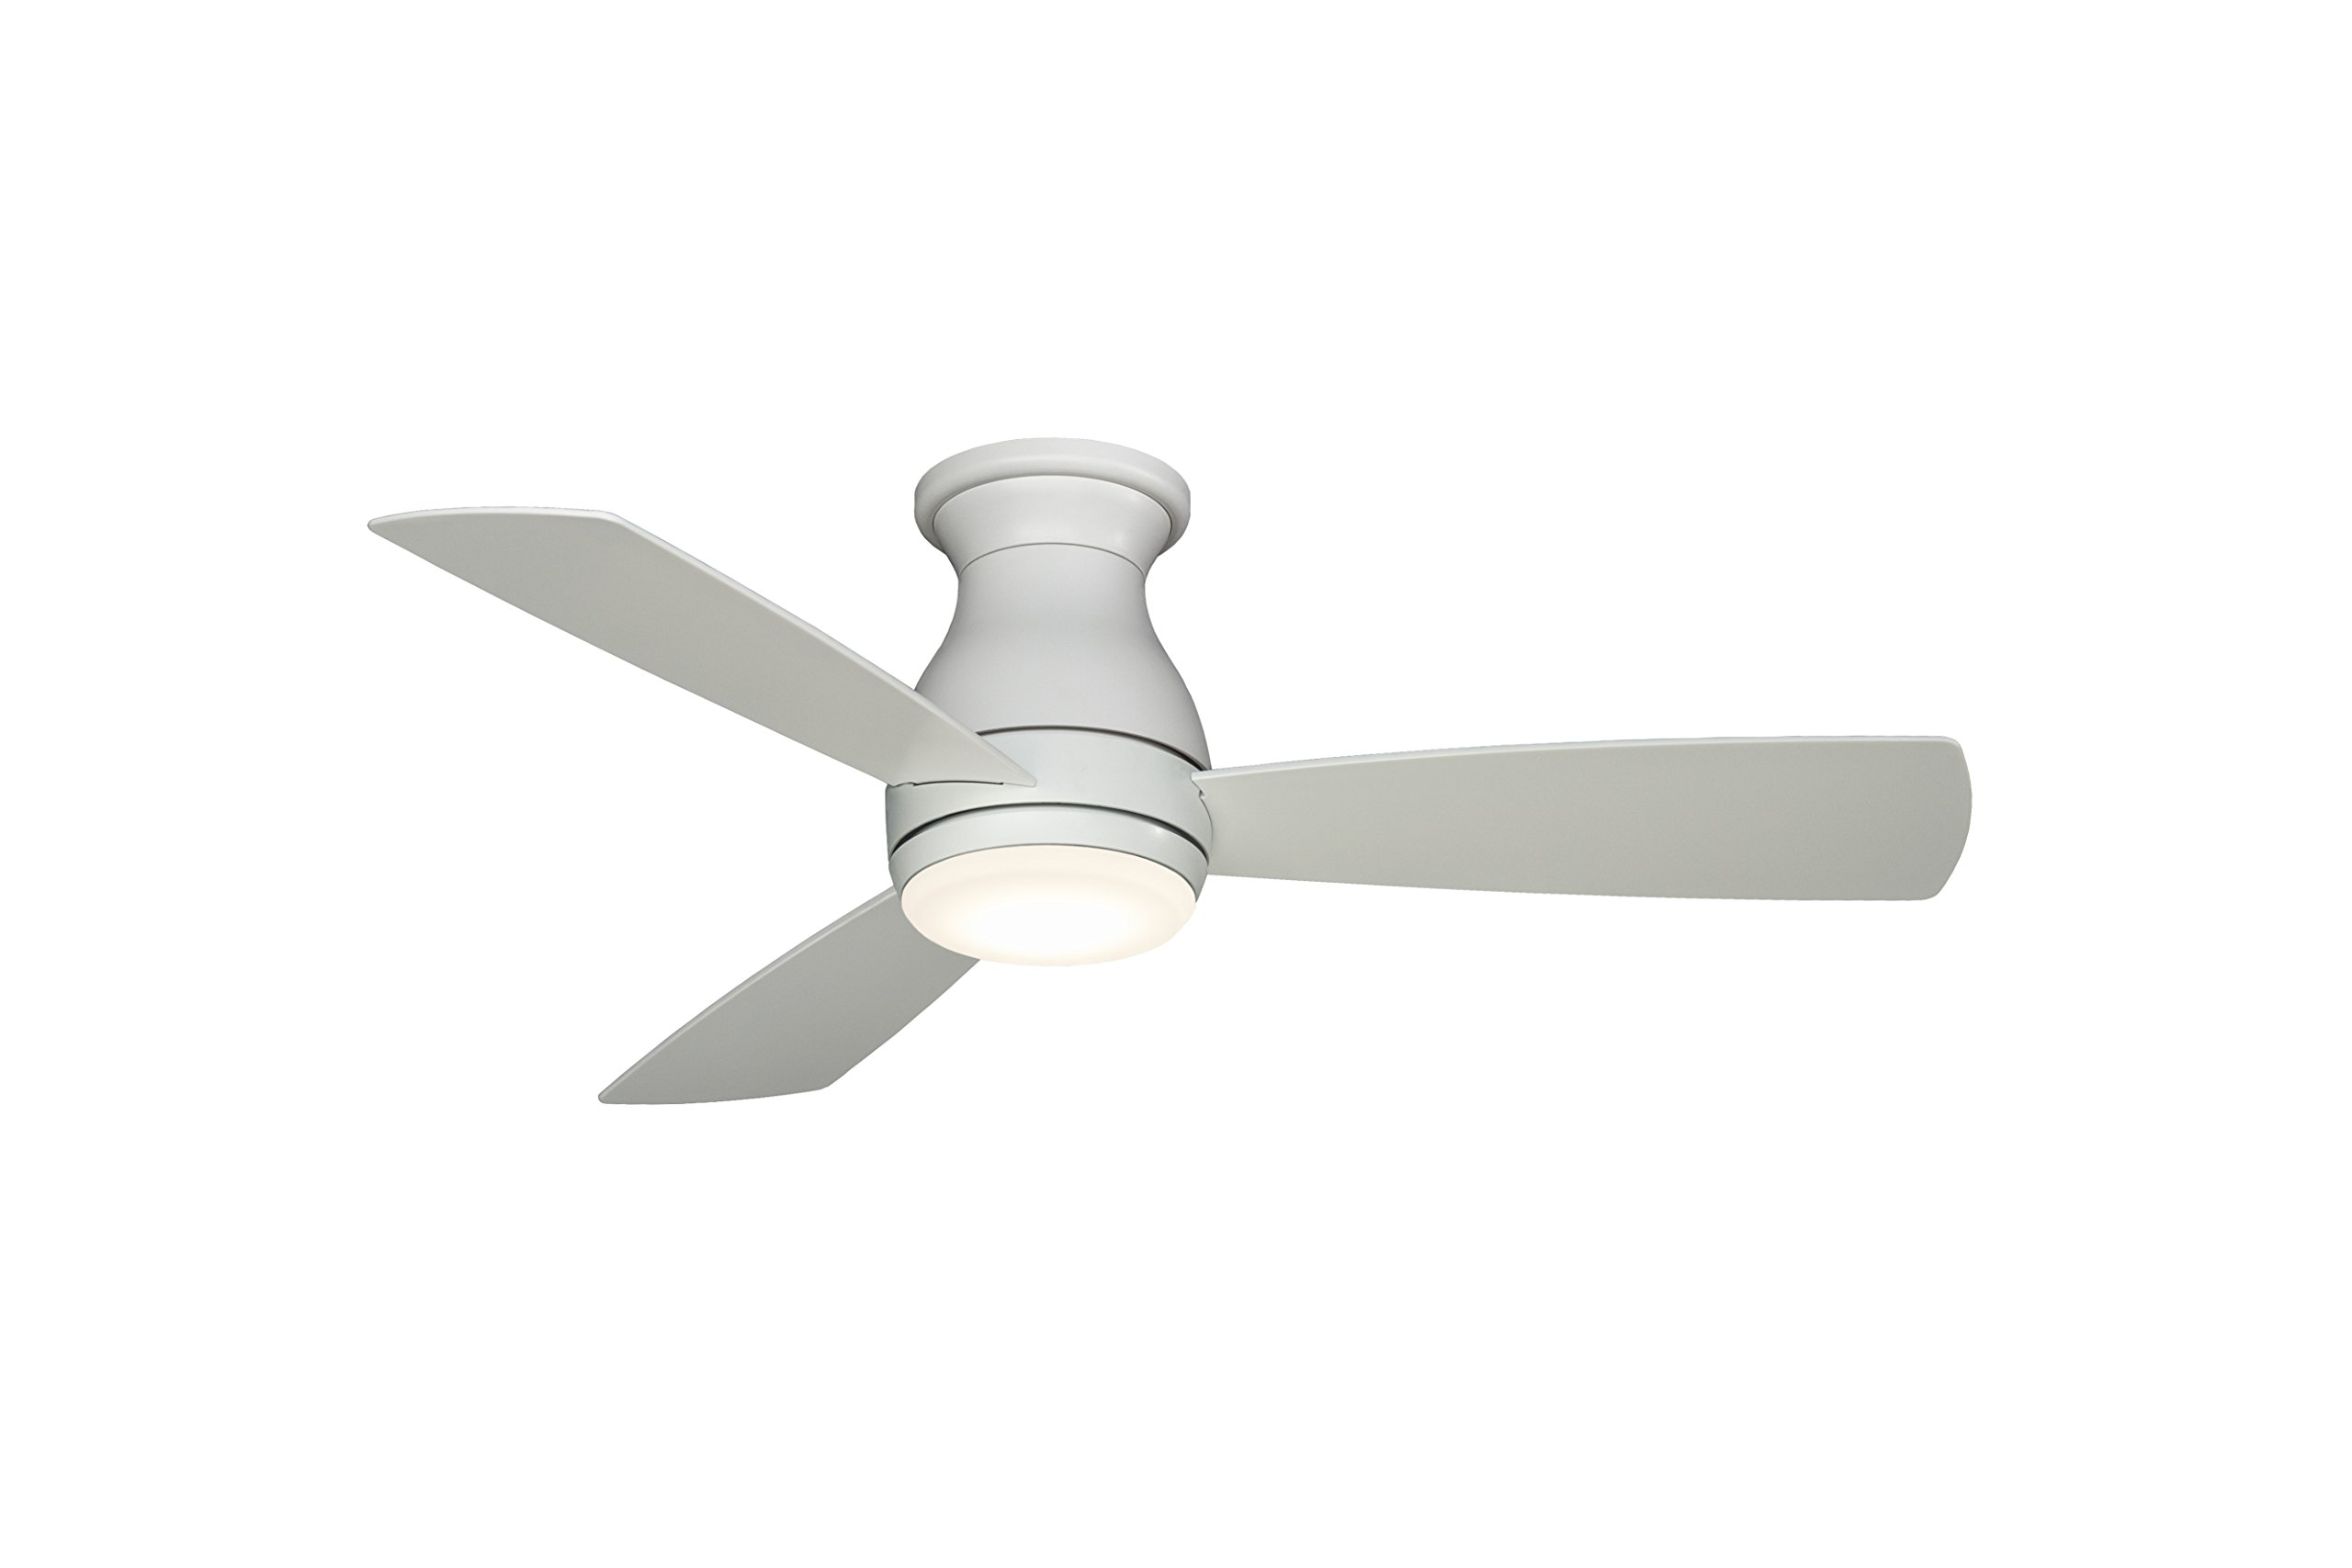 Fanimation Hugh - 44 inch - Matte White with Matte White Blades with LED Light Kit and Wall Control - Wet Rated - FPS8332MWW